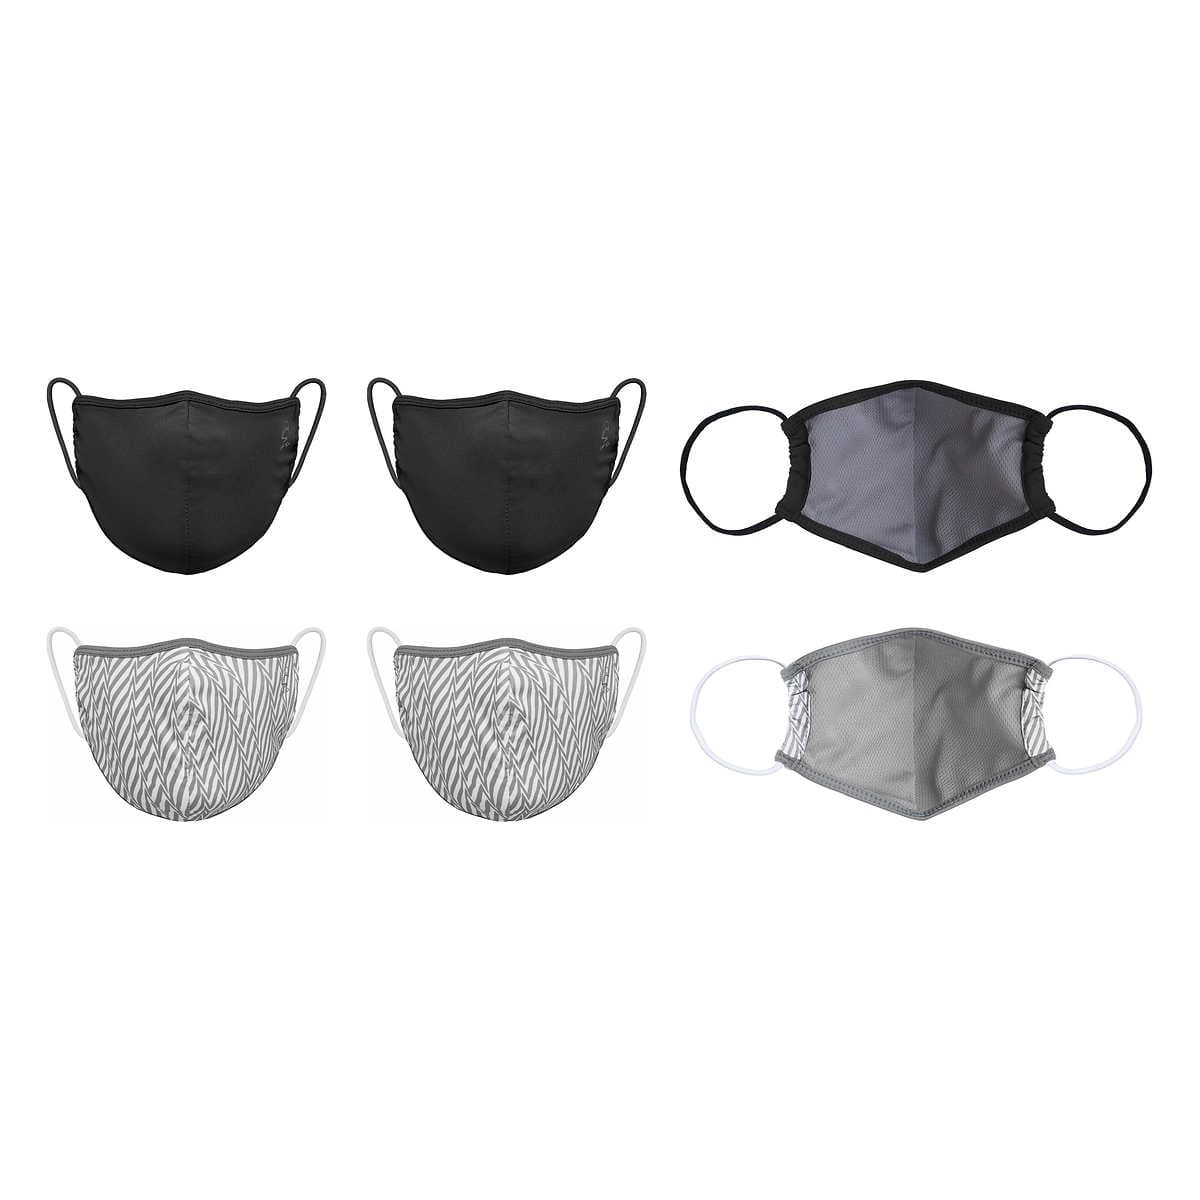 Costco Members: 20 Sunday Afternoons UVShield Cool Face Cover $4.95